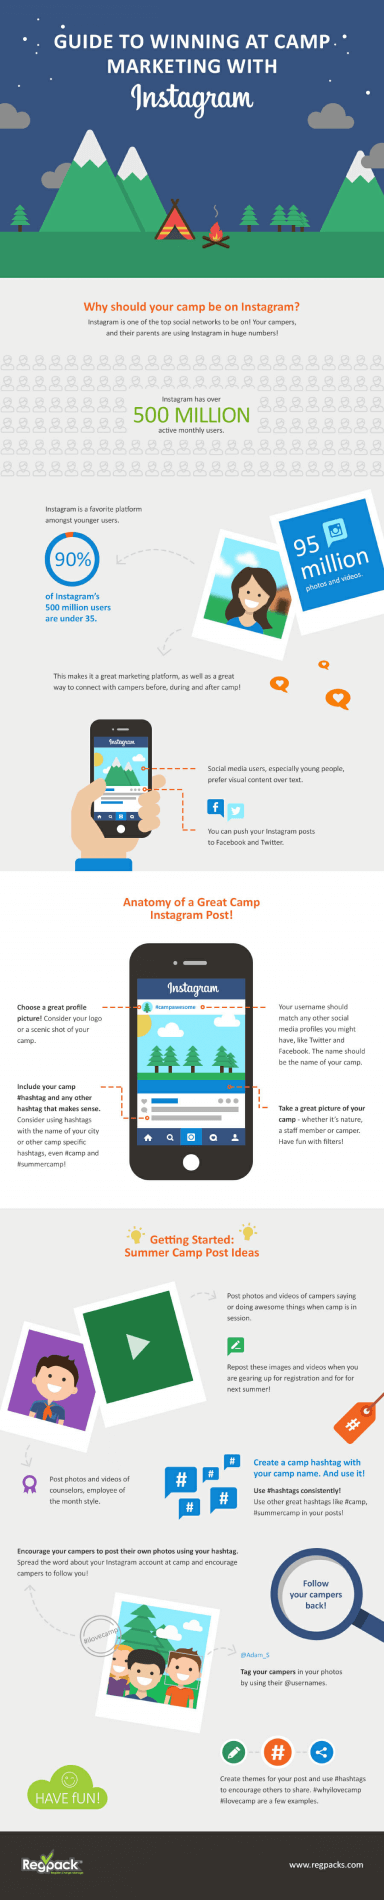 instagram infographic camp